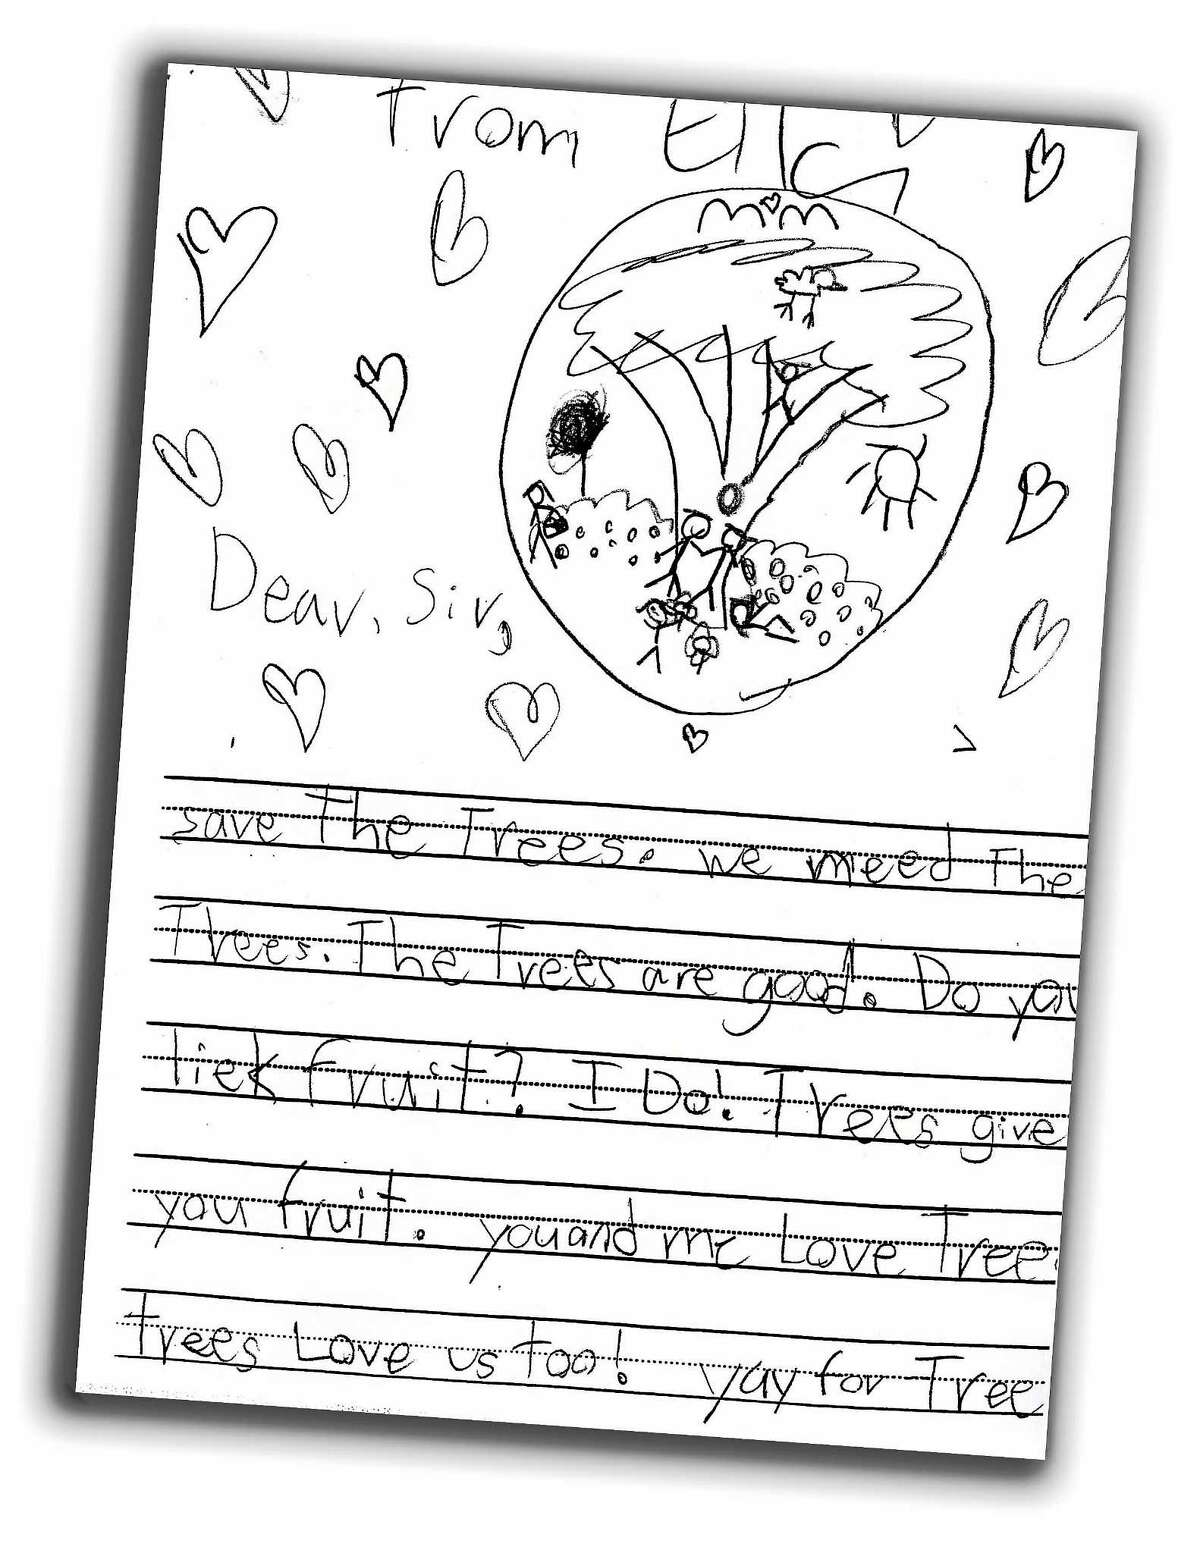 Ella, 6, a student at Foote School in New Haven, contributed this drawing about trees.